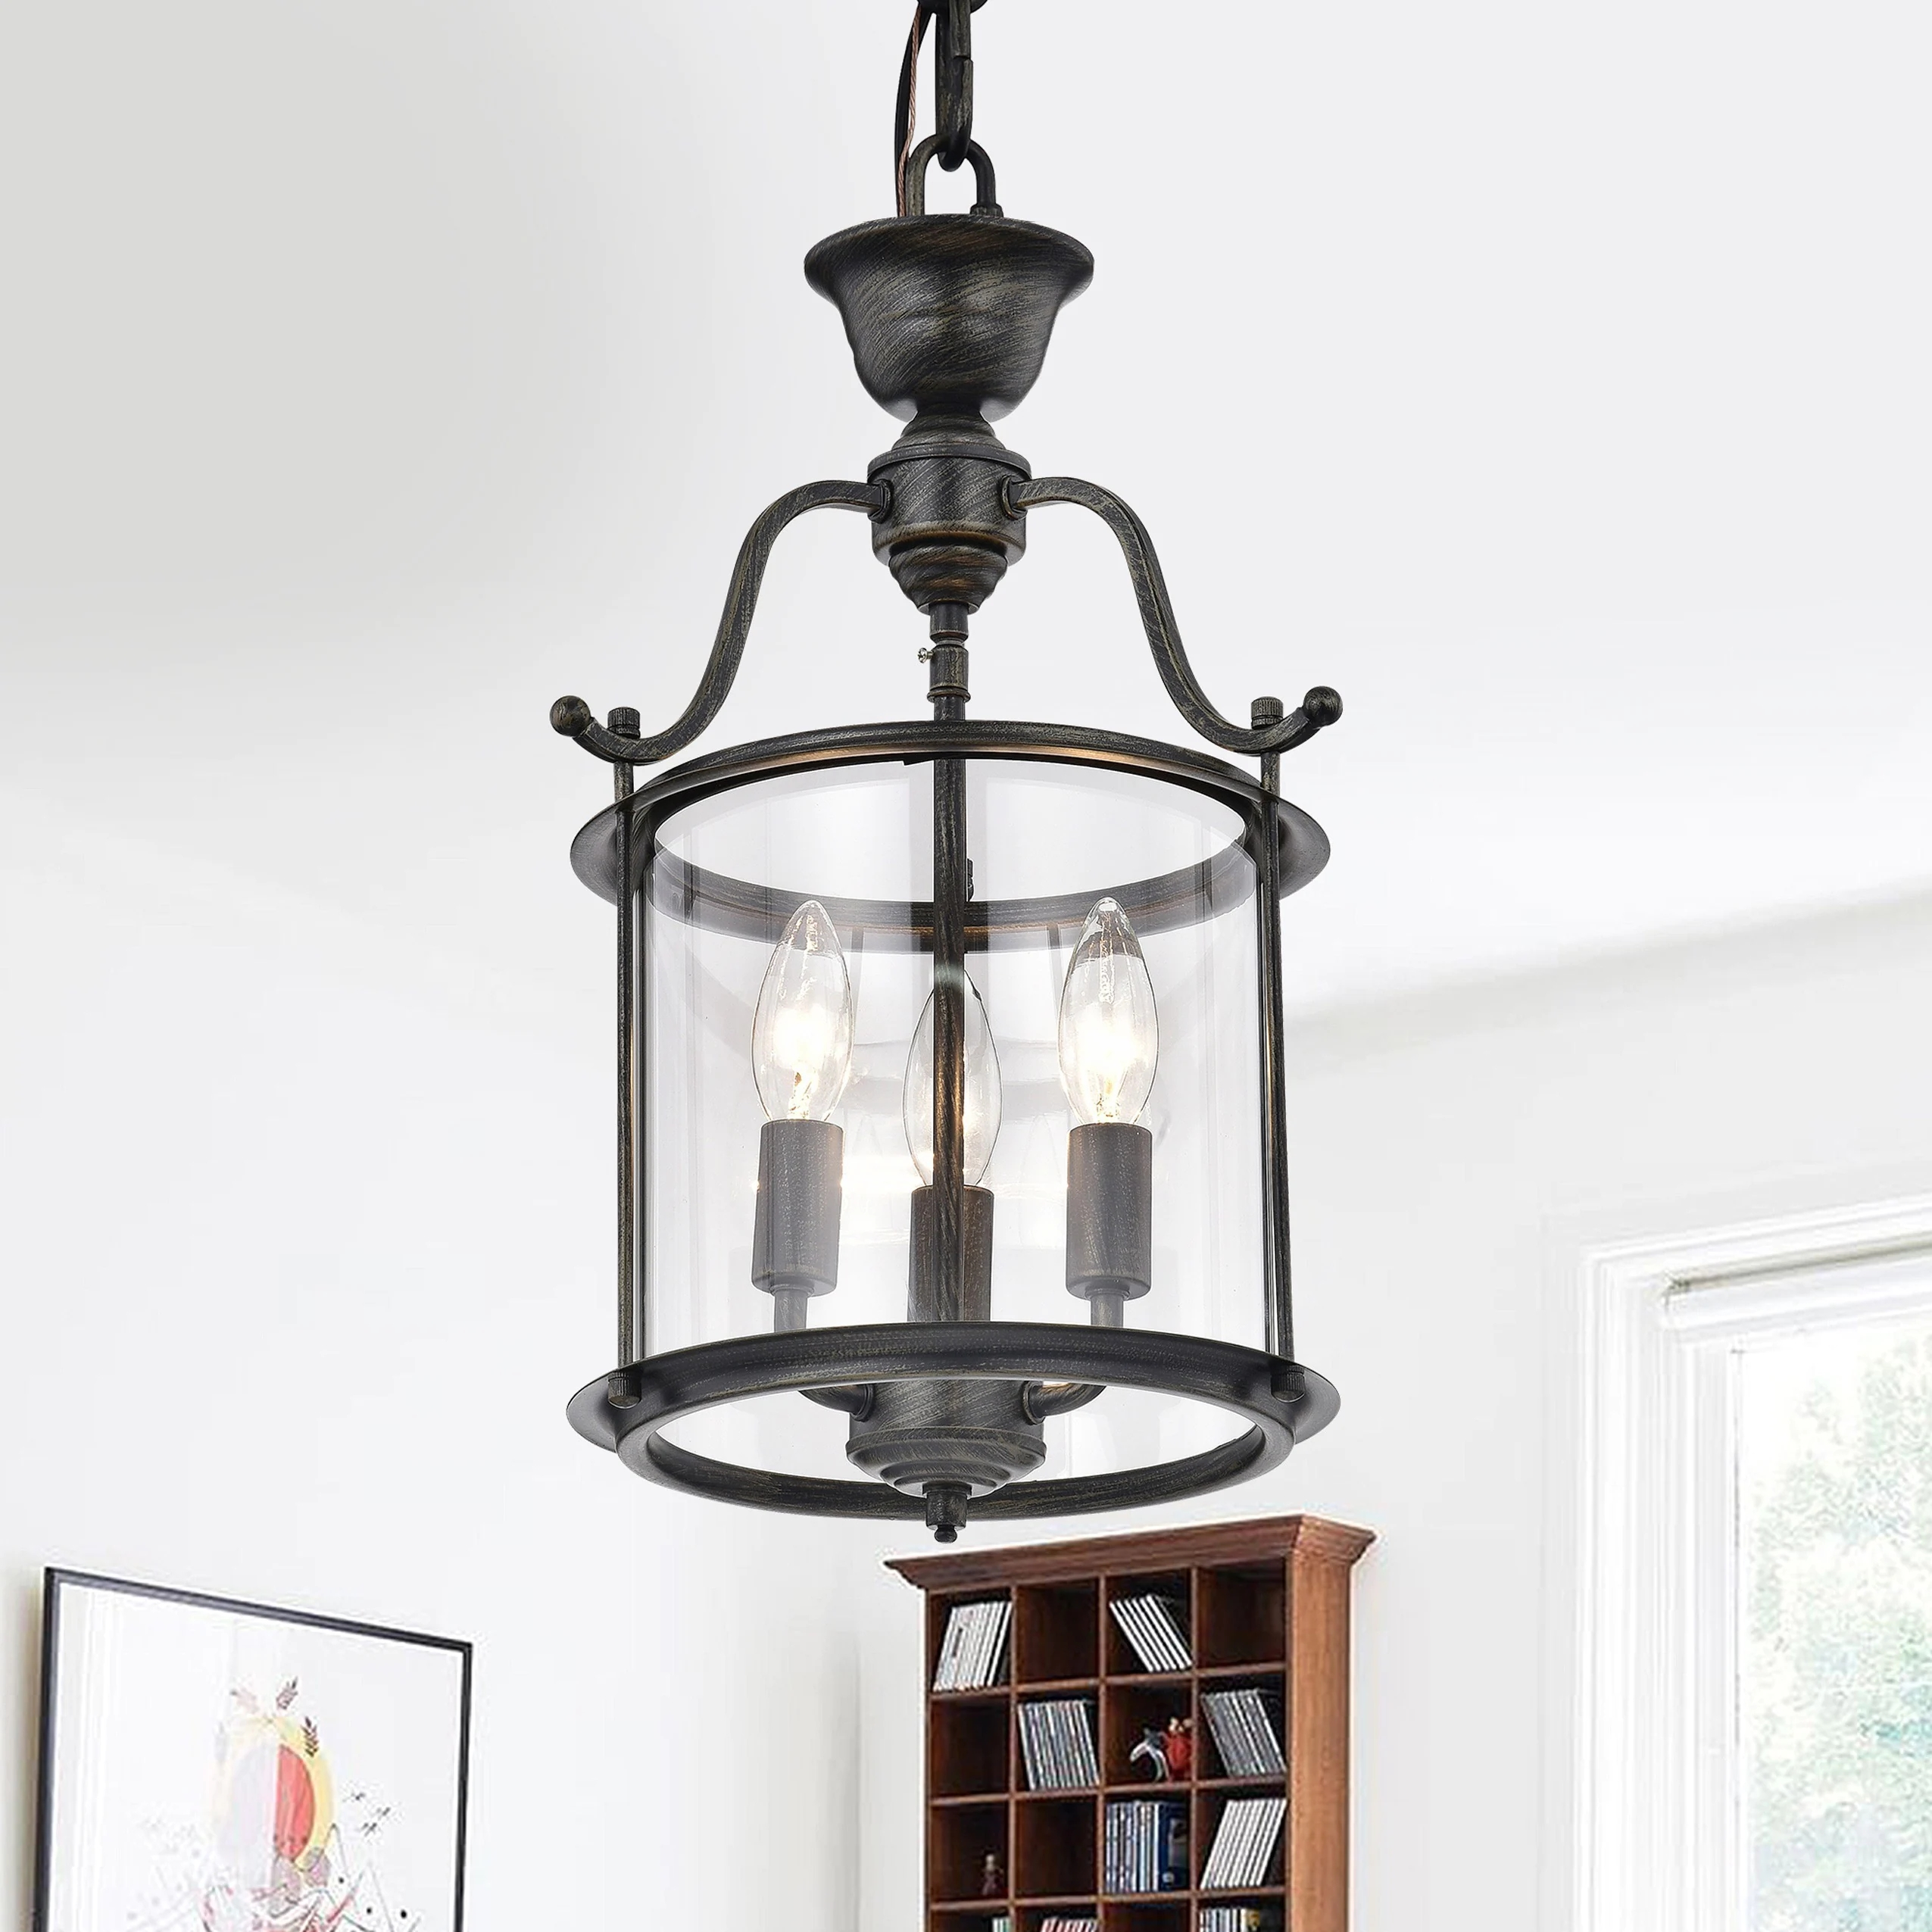 3-light Foyer Clear Glass Pendant Chandelier L161-IM-550